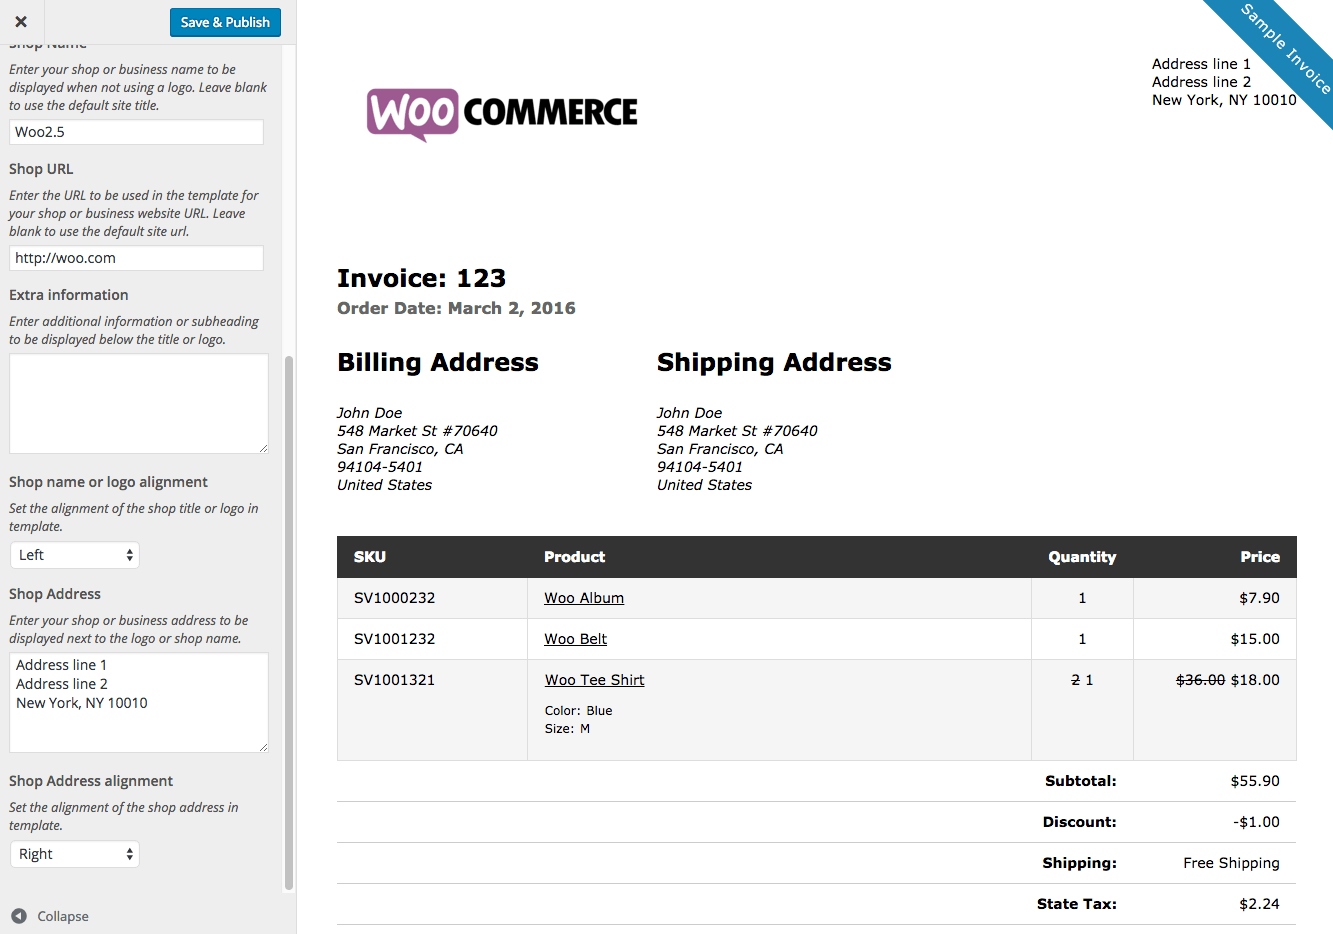 Ebitus  Unusual Woocommerce Print Invoices Amp Packing Lists  Woocommerce Docs With Exquisite Woocommerce Print Invoices  Packing Lists Customizer With Awesome How To Do Invoicing Also Magento Invoice Extension In Addition Sample Invoice Number And Invoice Recognition As Well As Open Source Invoice Management Additionally Invoice Amount Means From Docswoocommercecom With Ebitus  Exquisite Woocommerce Print Invoices Amp Packing Lists  Woocommerce Docs With Awesome Woocommerce Print Invoices  Packing Lists Customizer And Unusual How To Do Invoicing Also Magento Invoice Extension In Addition Sample Invoice Number From Docswoocommercecom